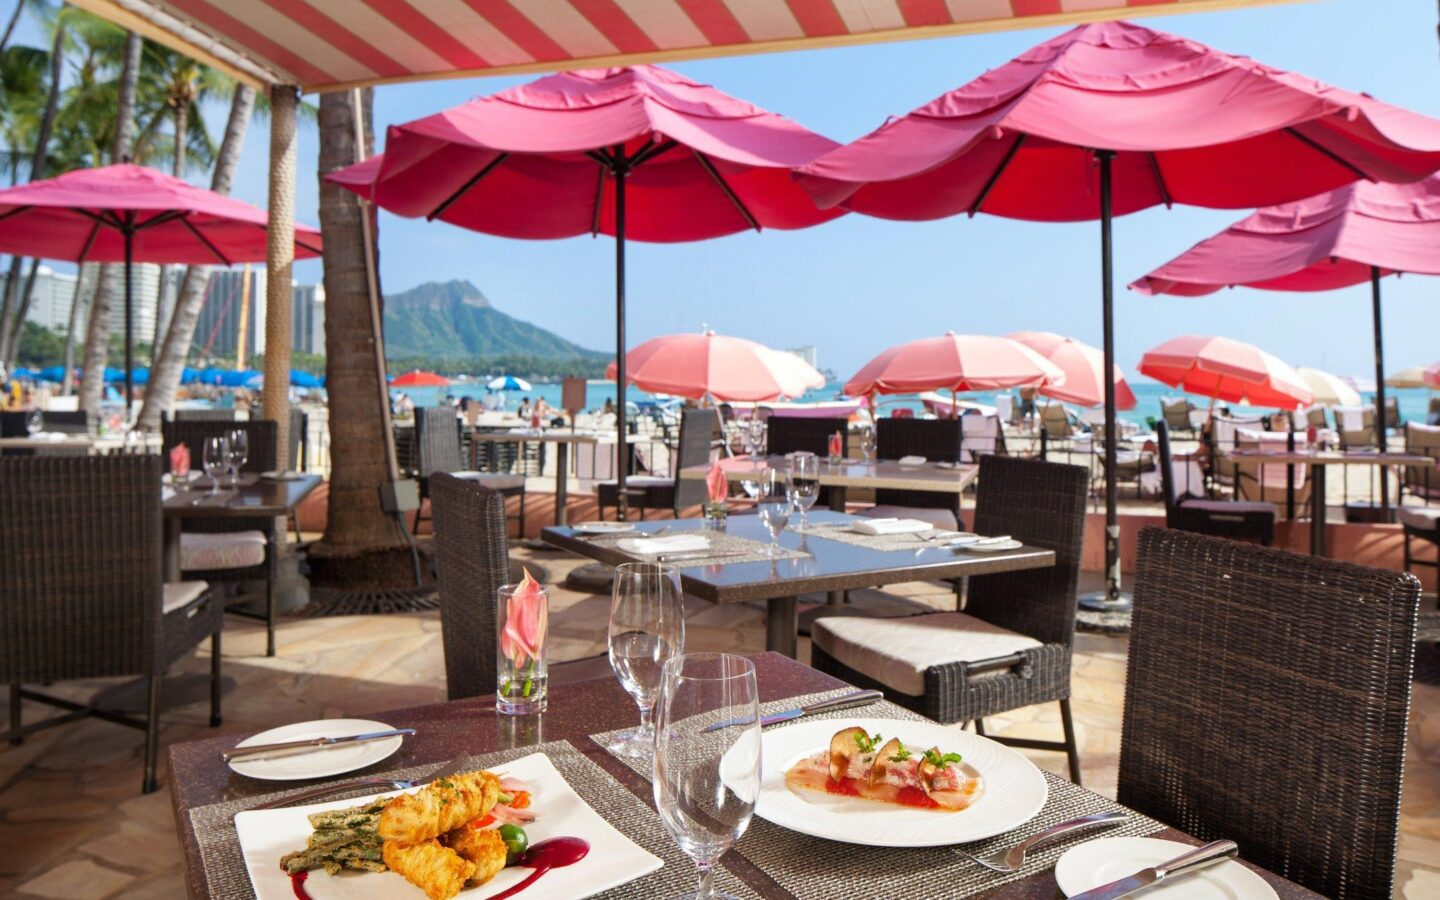 restaurant dining tables located next to the beach with big pink umbrellas